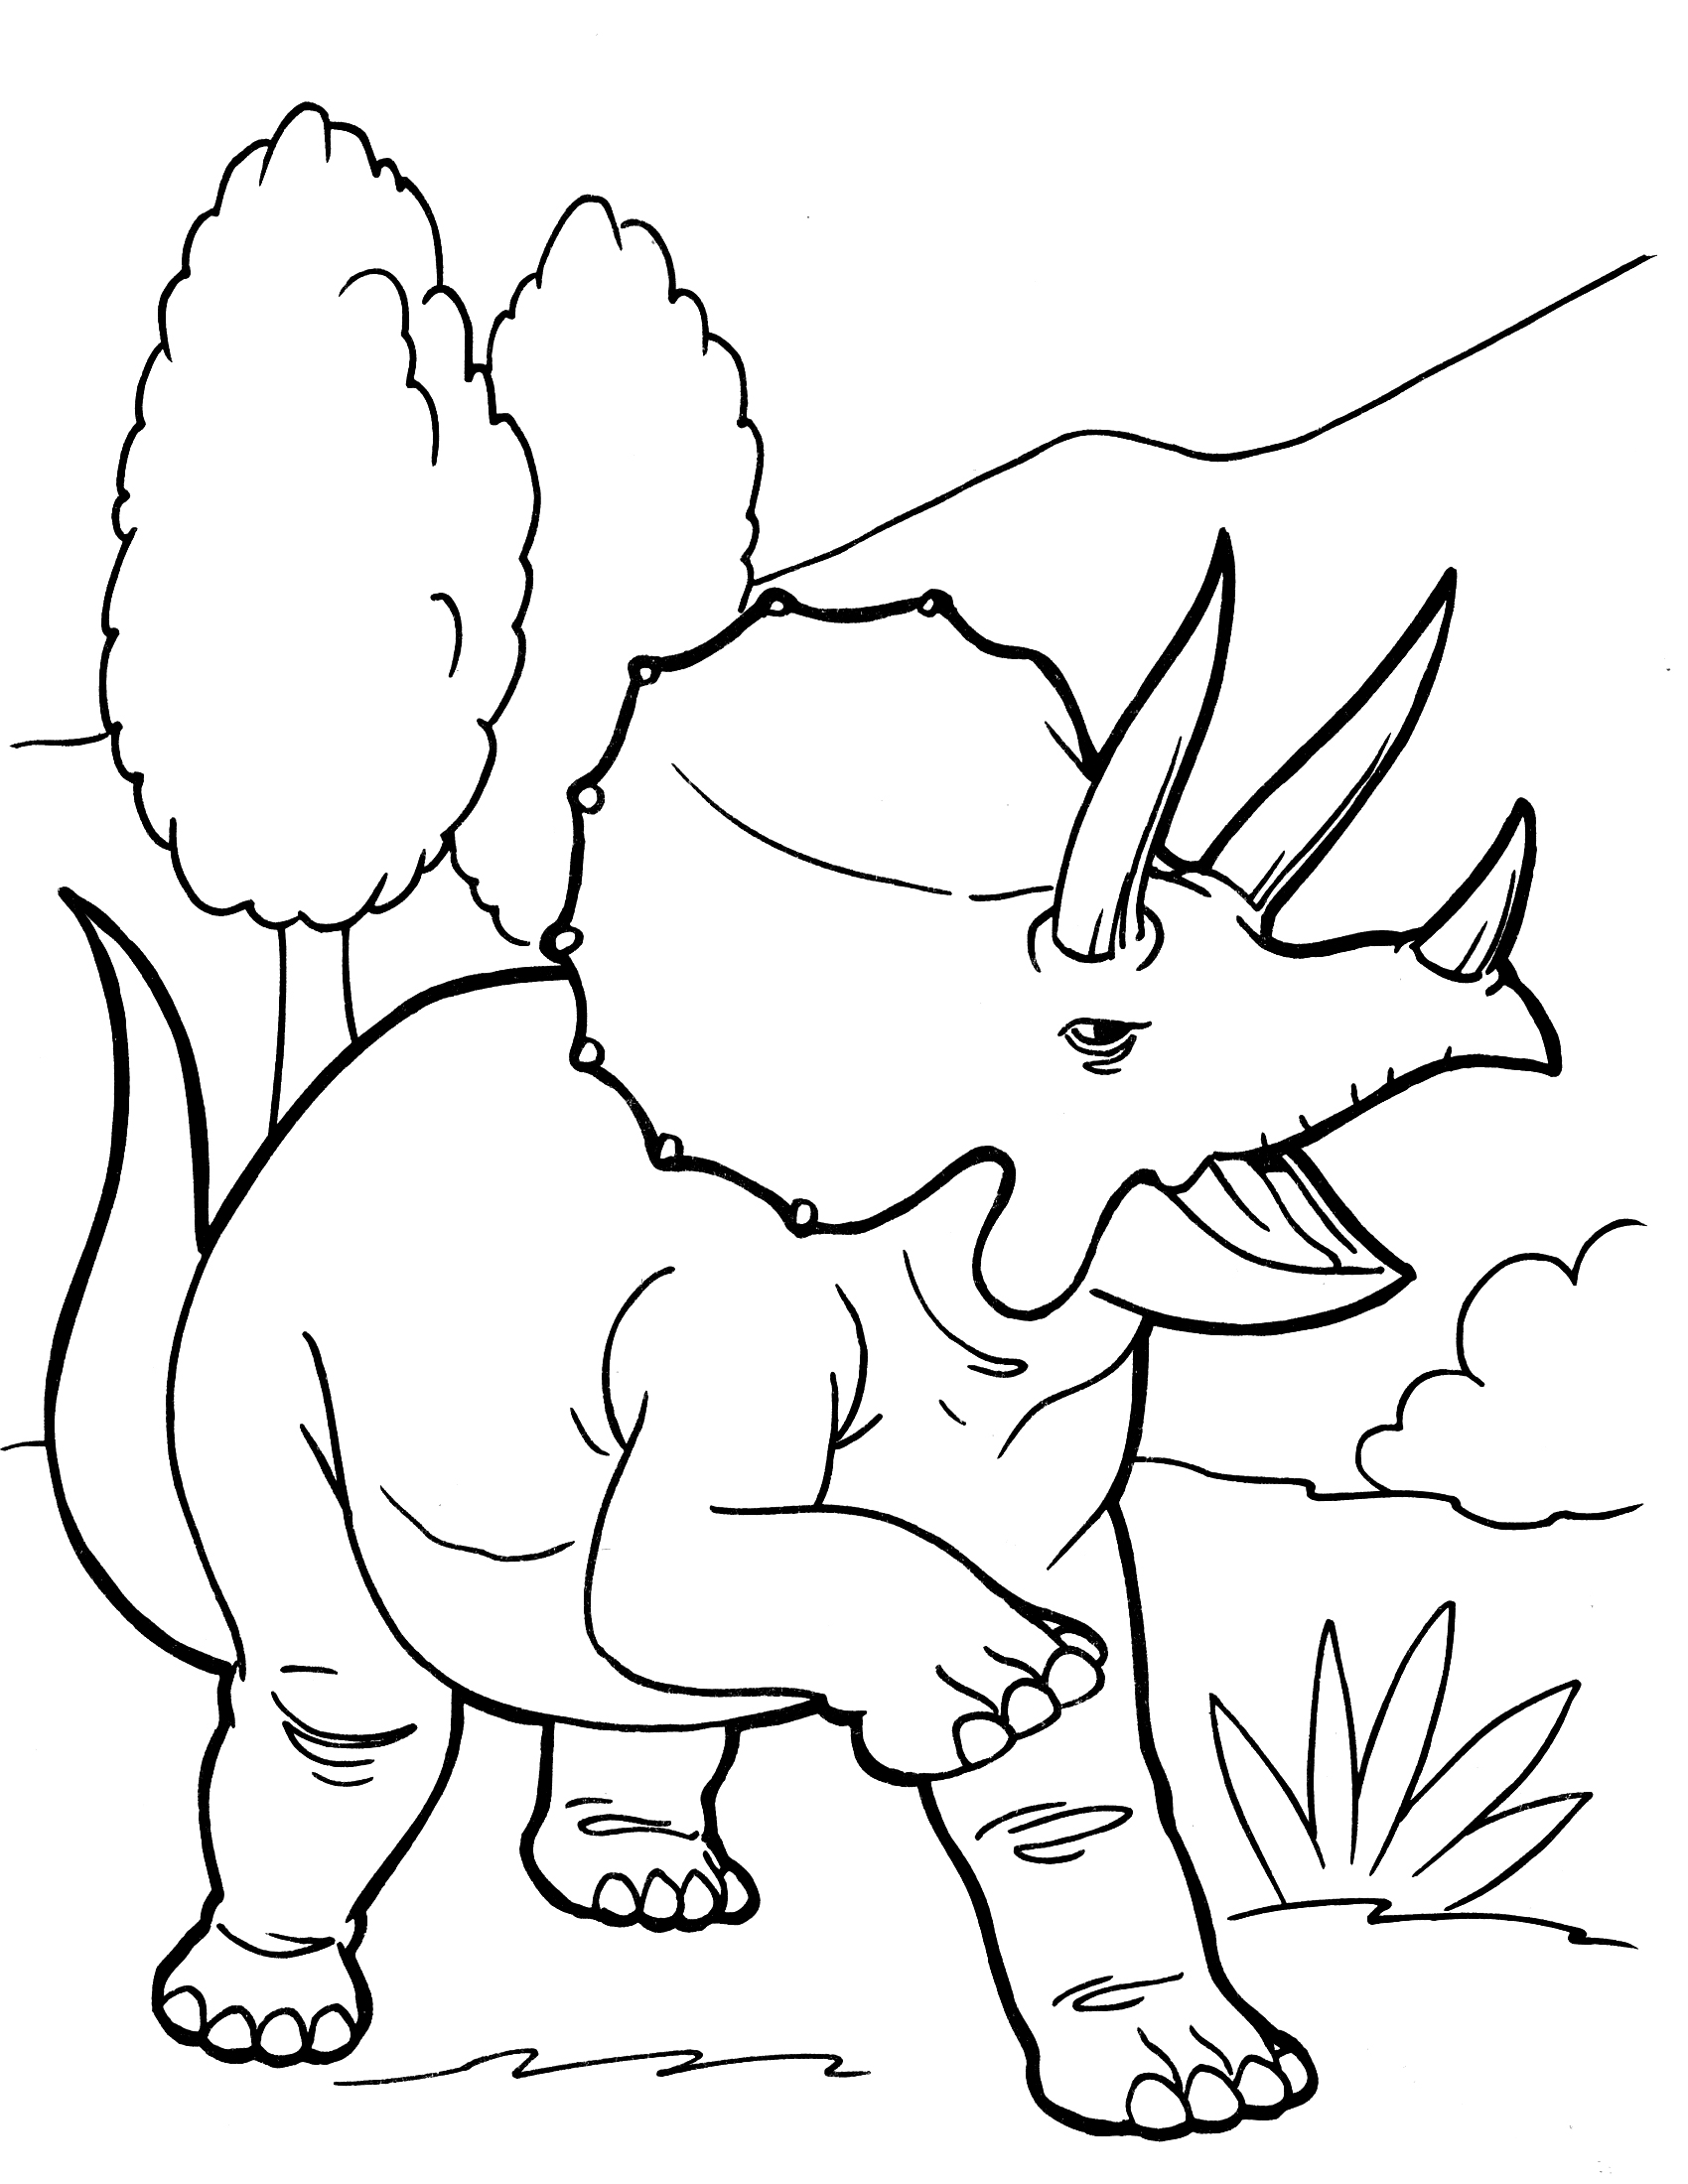 Disney Dinosaur Coloring Page Triceratops Running in Forest